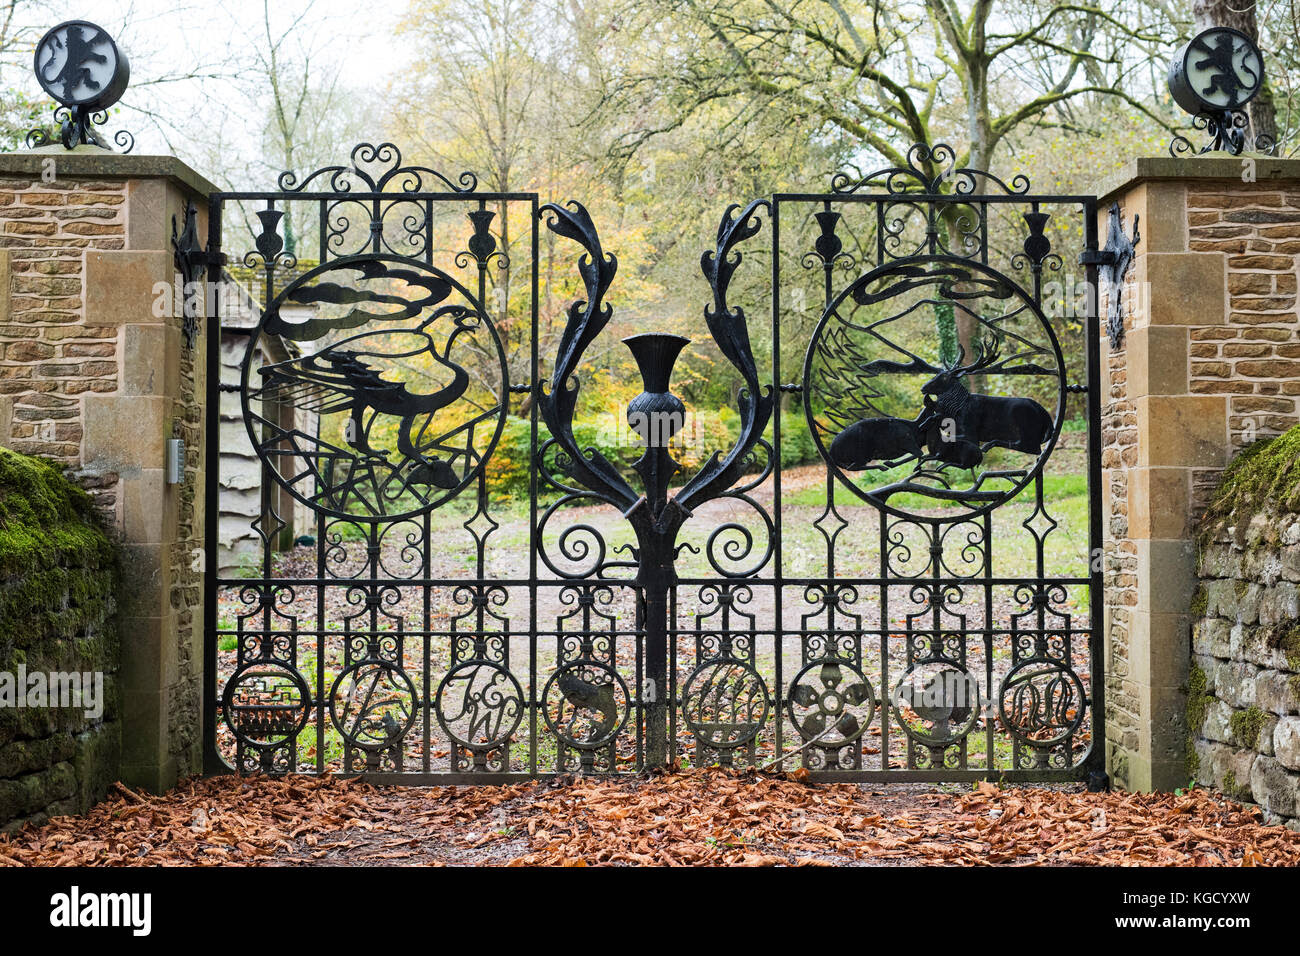 Decorative Wrought Iron Gates With A Distinctive Scottish Theme In